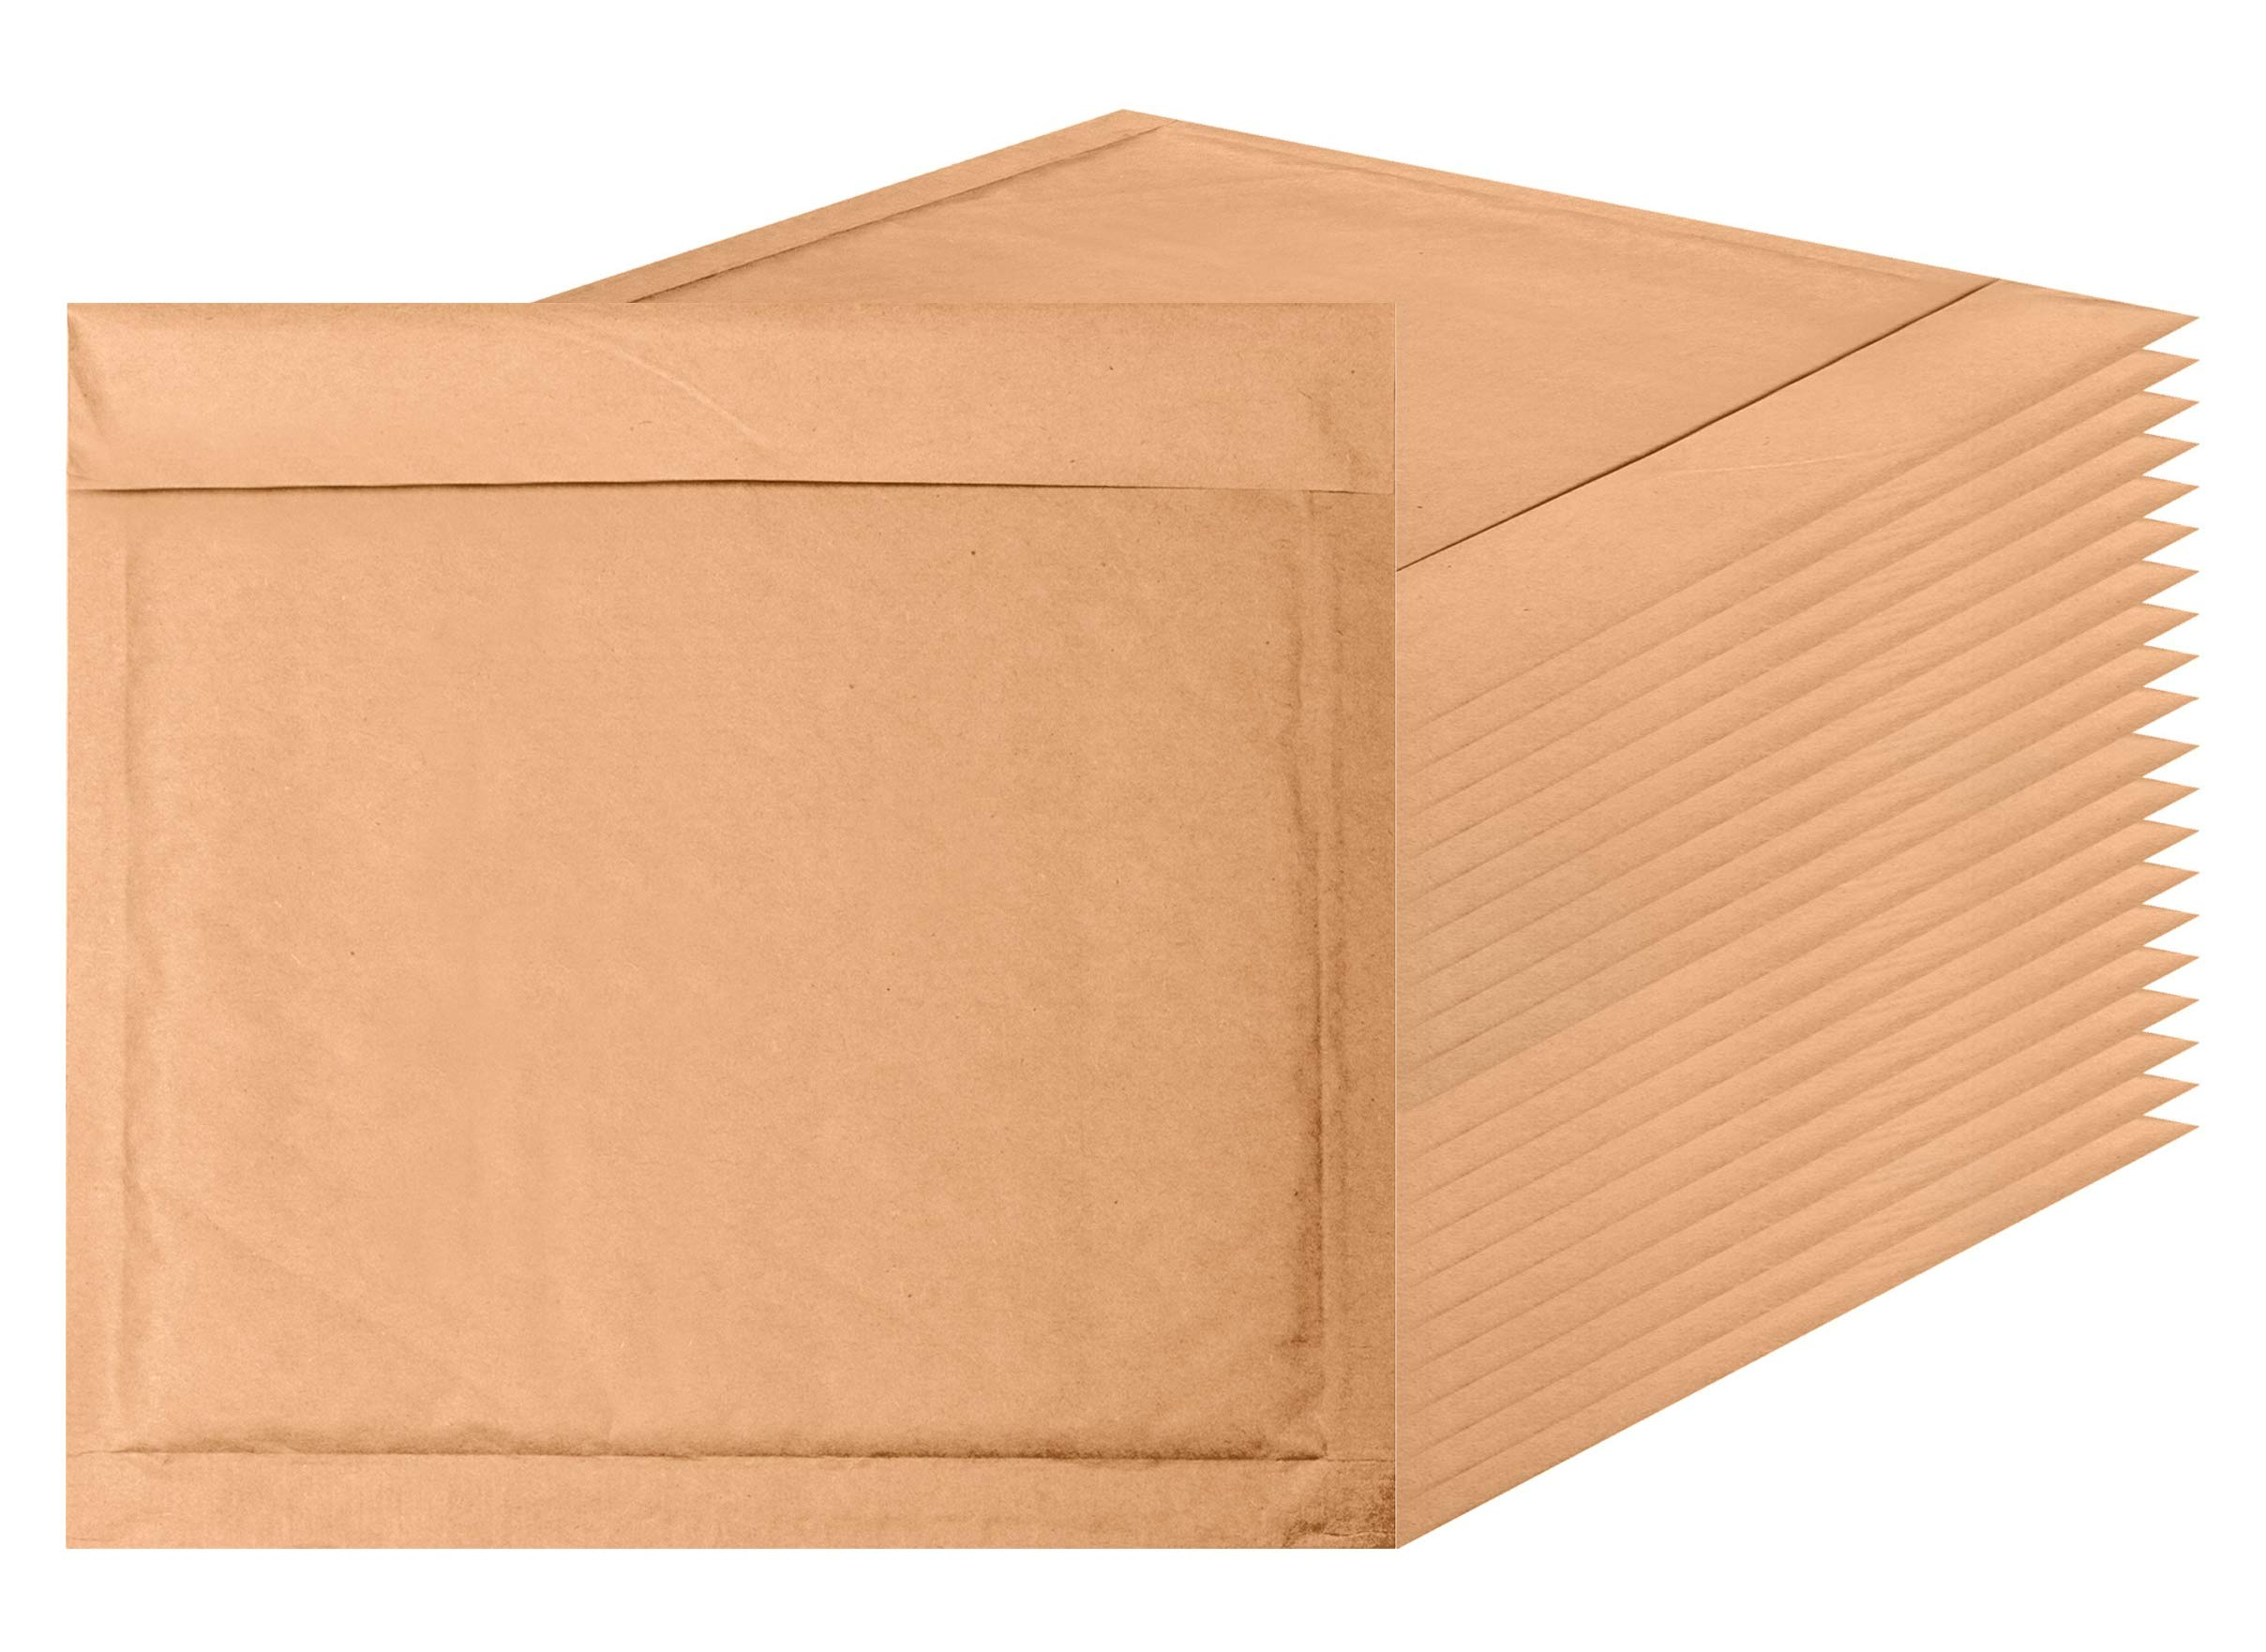 CD Size Natural Kraft Bubble mailers 7.25 x 7 Brown Padded envelopes 7 1/4 x 7 by Amiff. Pack of 20 Kraft Paper Cushion envelopes. Exterior Size 7.5 x 8 (7 1/2 x 8). Peel and Seal. Mailing, Shipping.